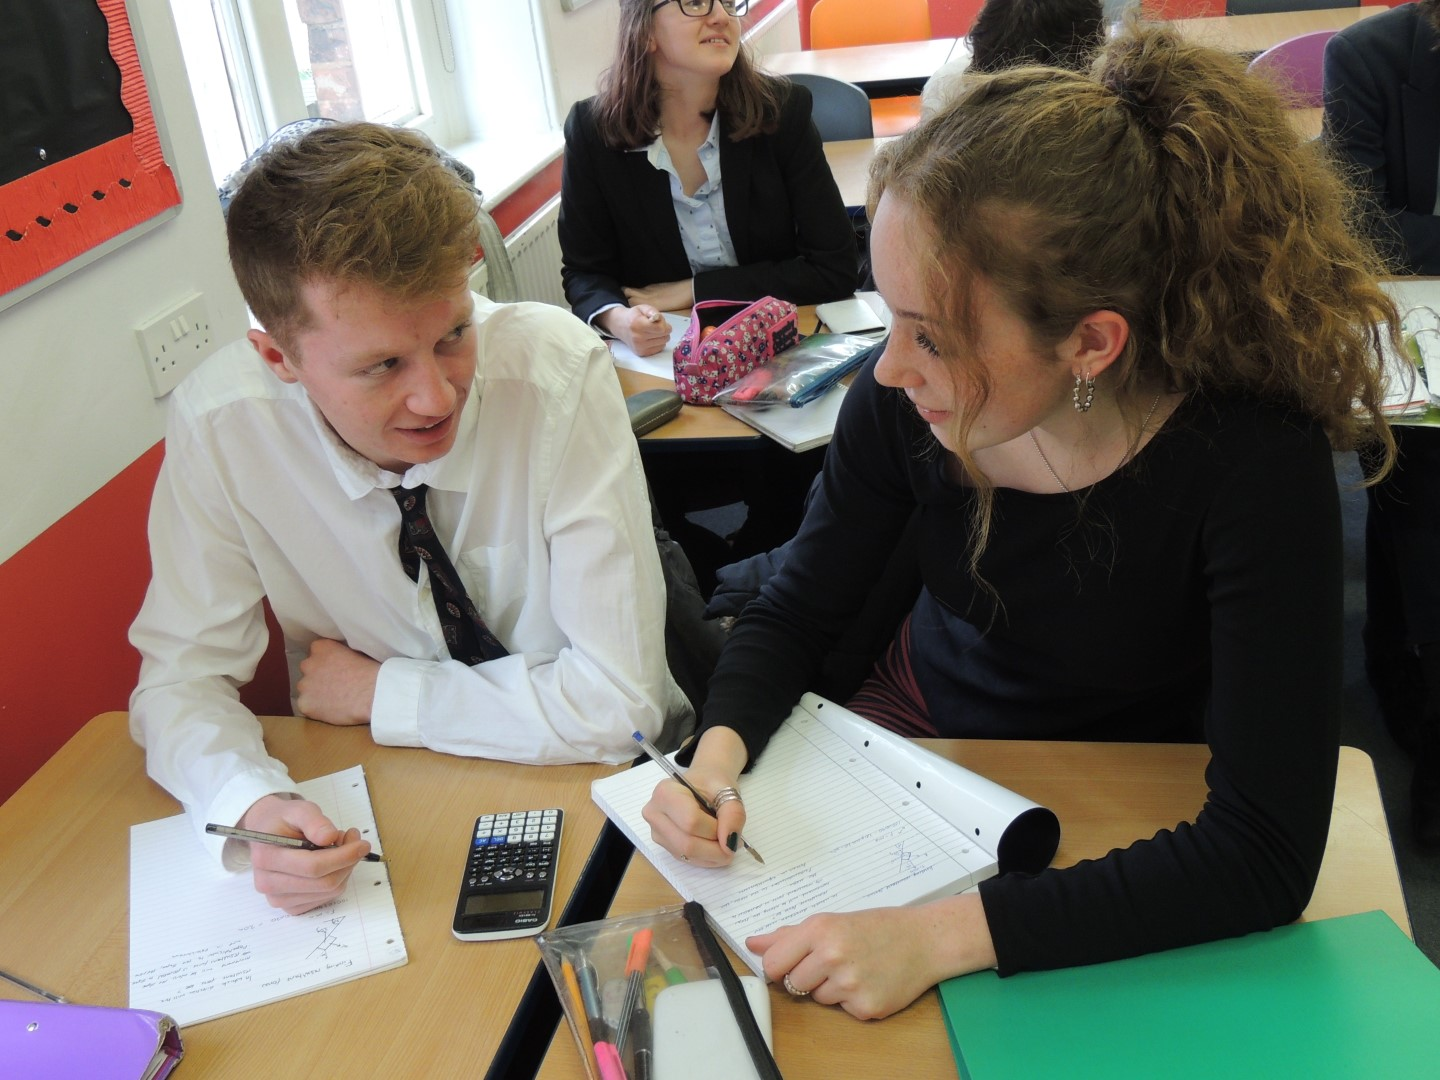 Students taking part in a Maths lesson at Alleyn's